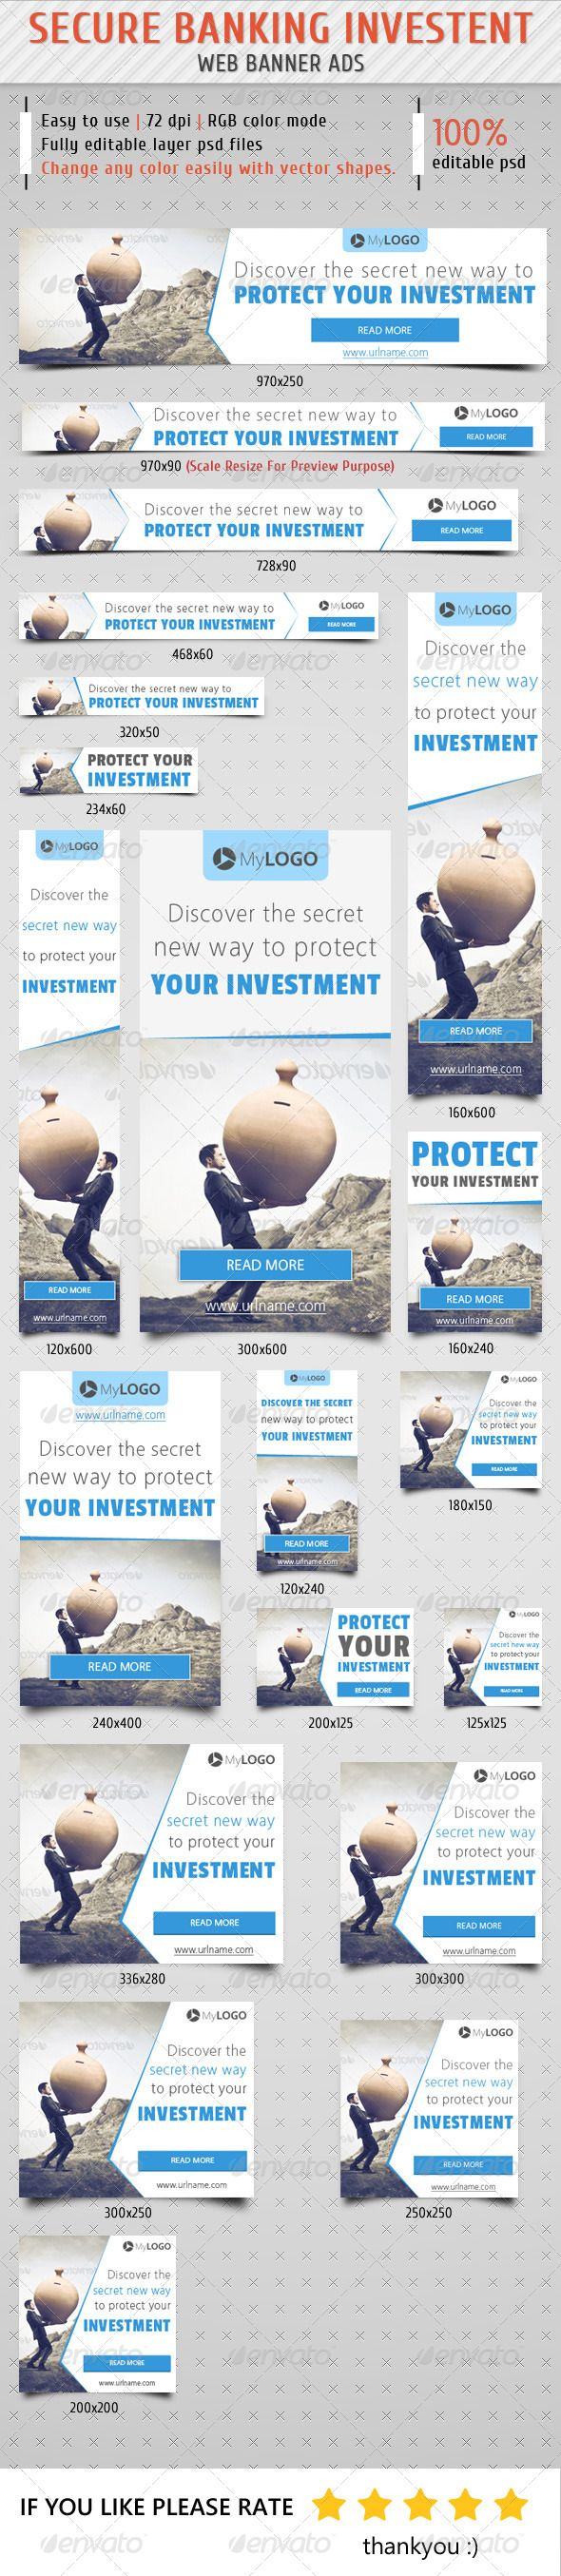 Secure Banking Investment Web Banner Ads Template PSD | Buy and Download: http://graphicriver.net/item/secure-banking-investment-web-banner-ads/8607043?WT.ac=category_thumb&WT.z_author=samiul75&ref=ksioks